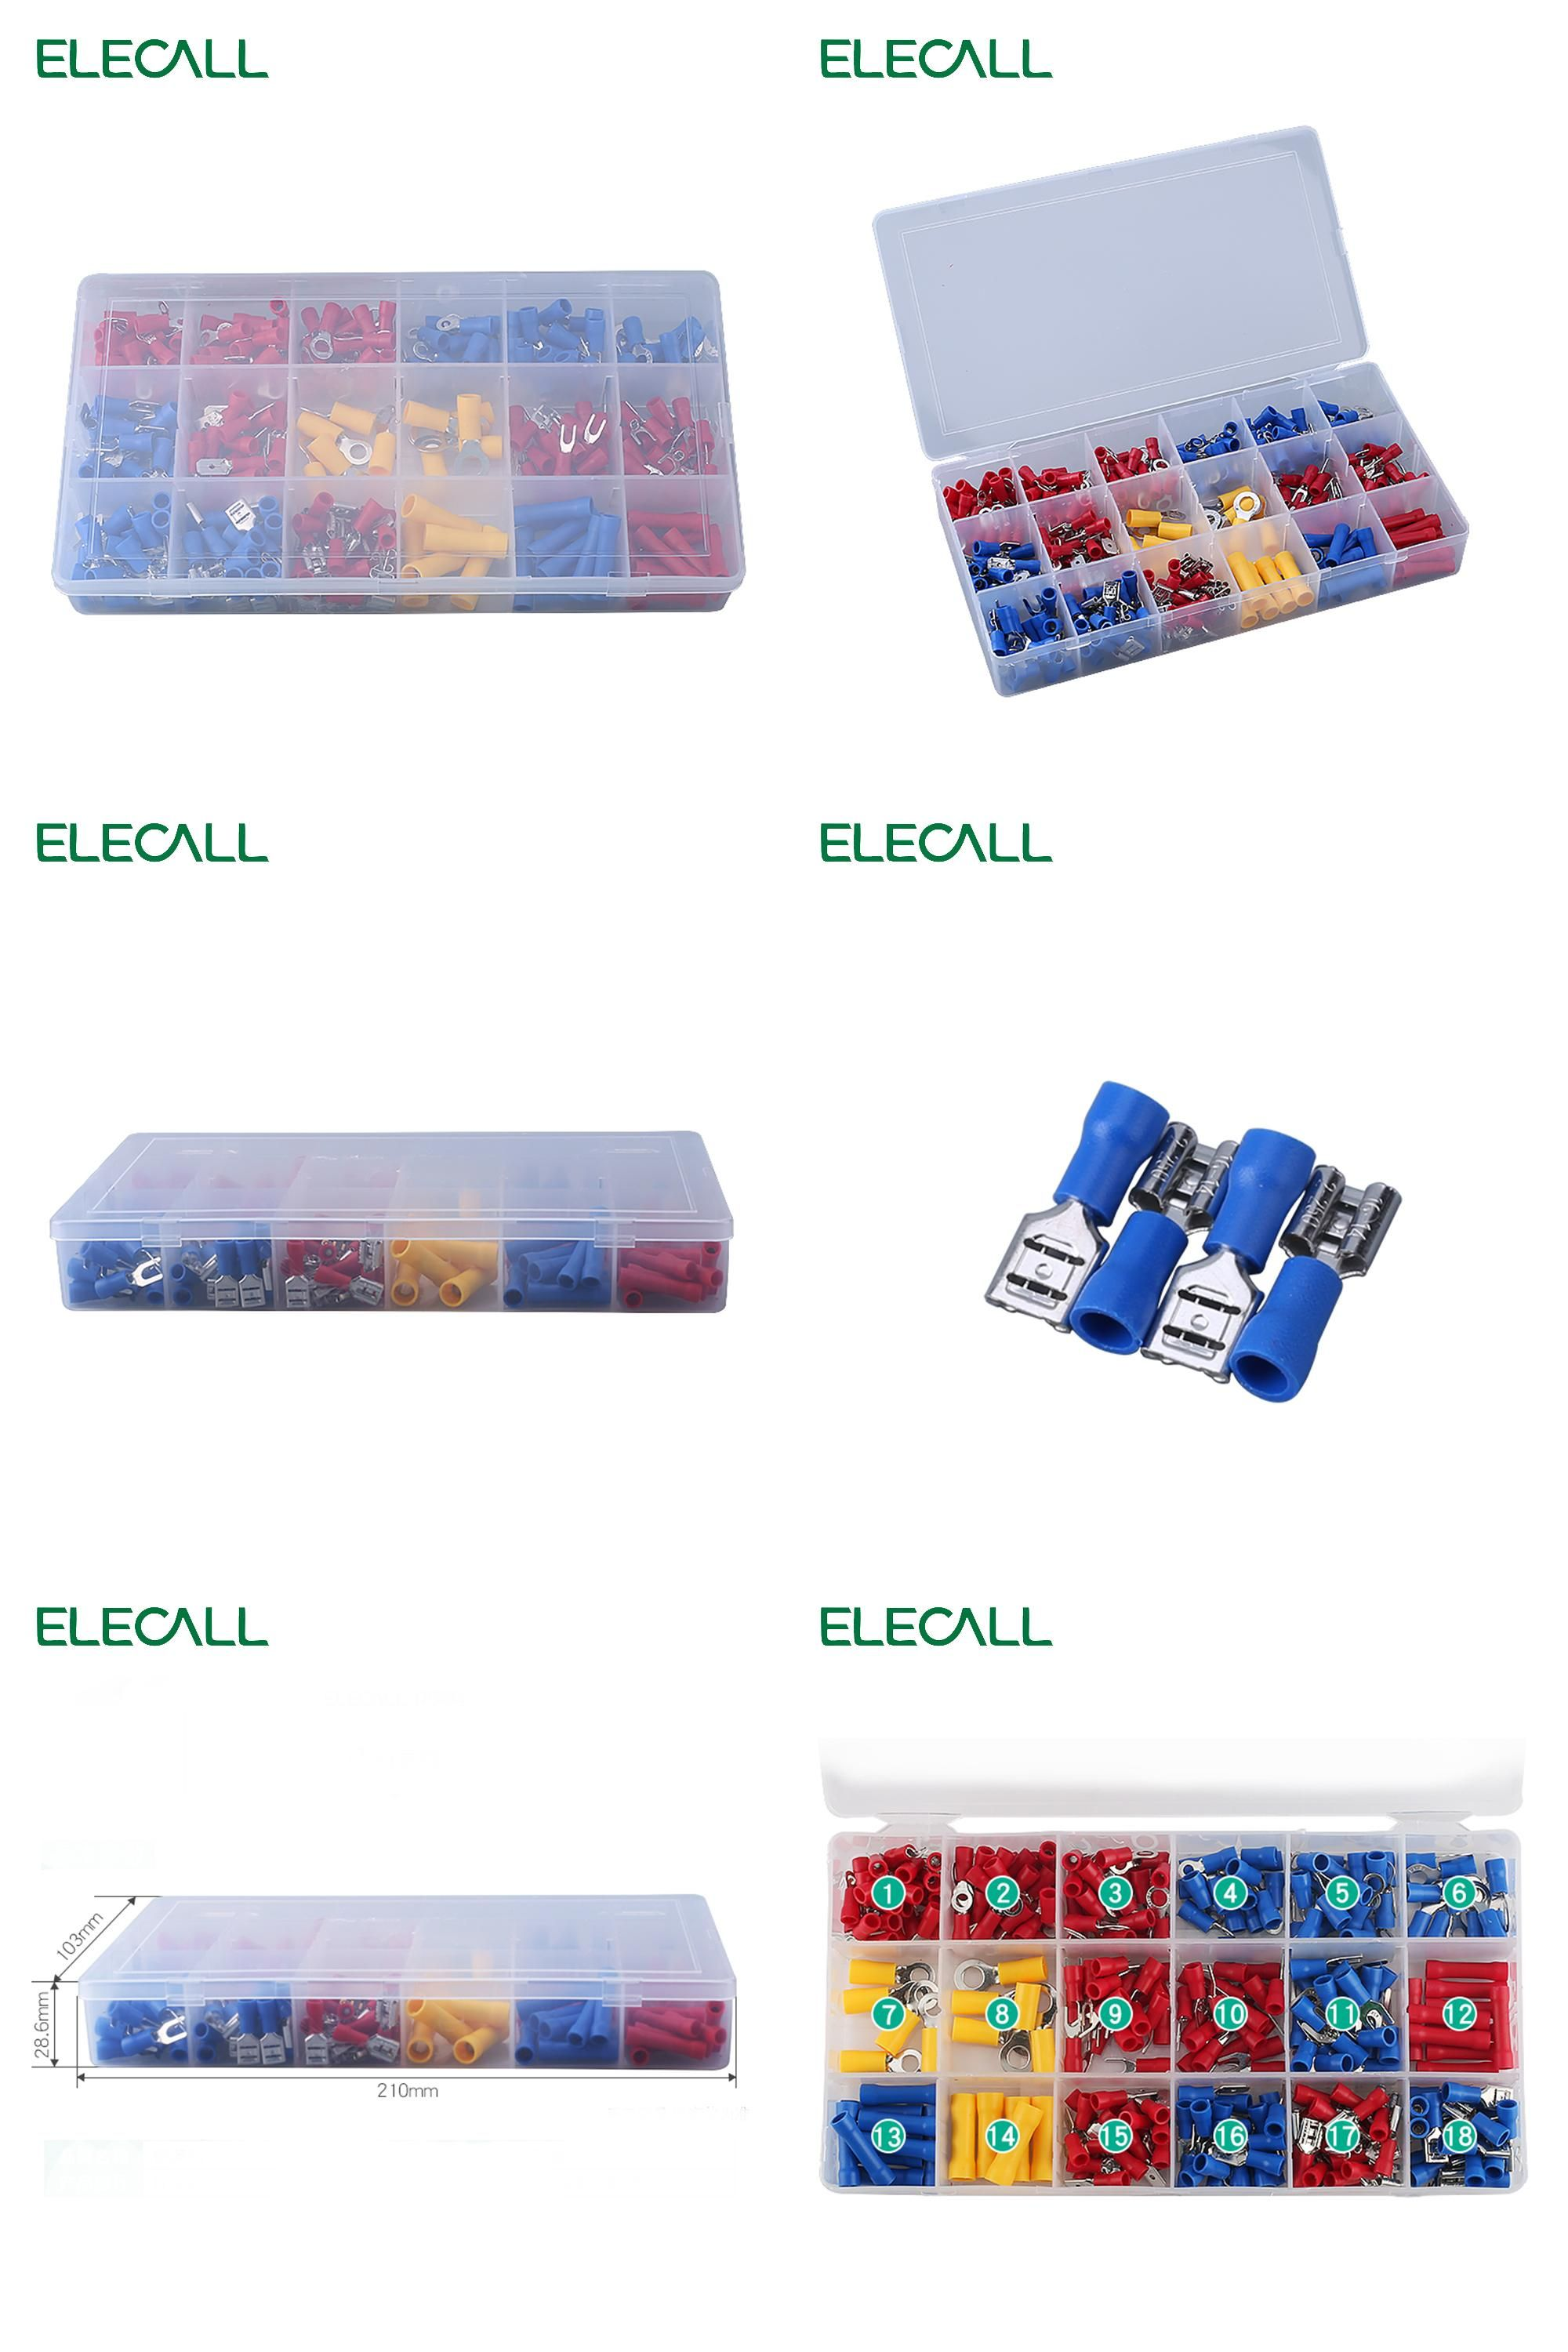 Visit to Buy] 295Pcs/ Box 18 In 1 Insulated Terminals Spade Ring ...